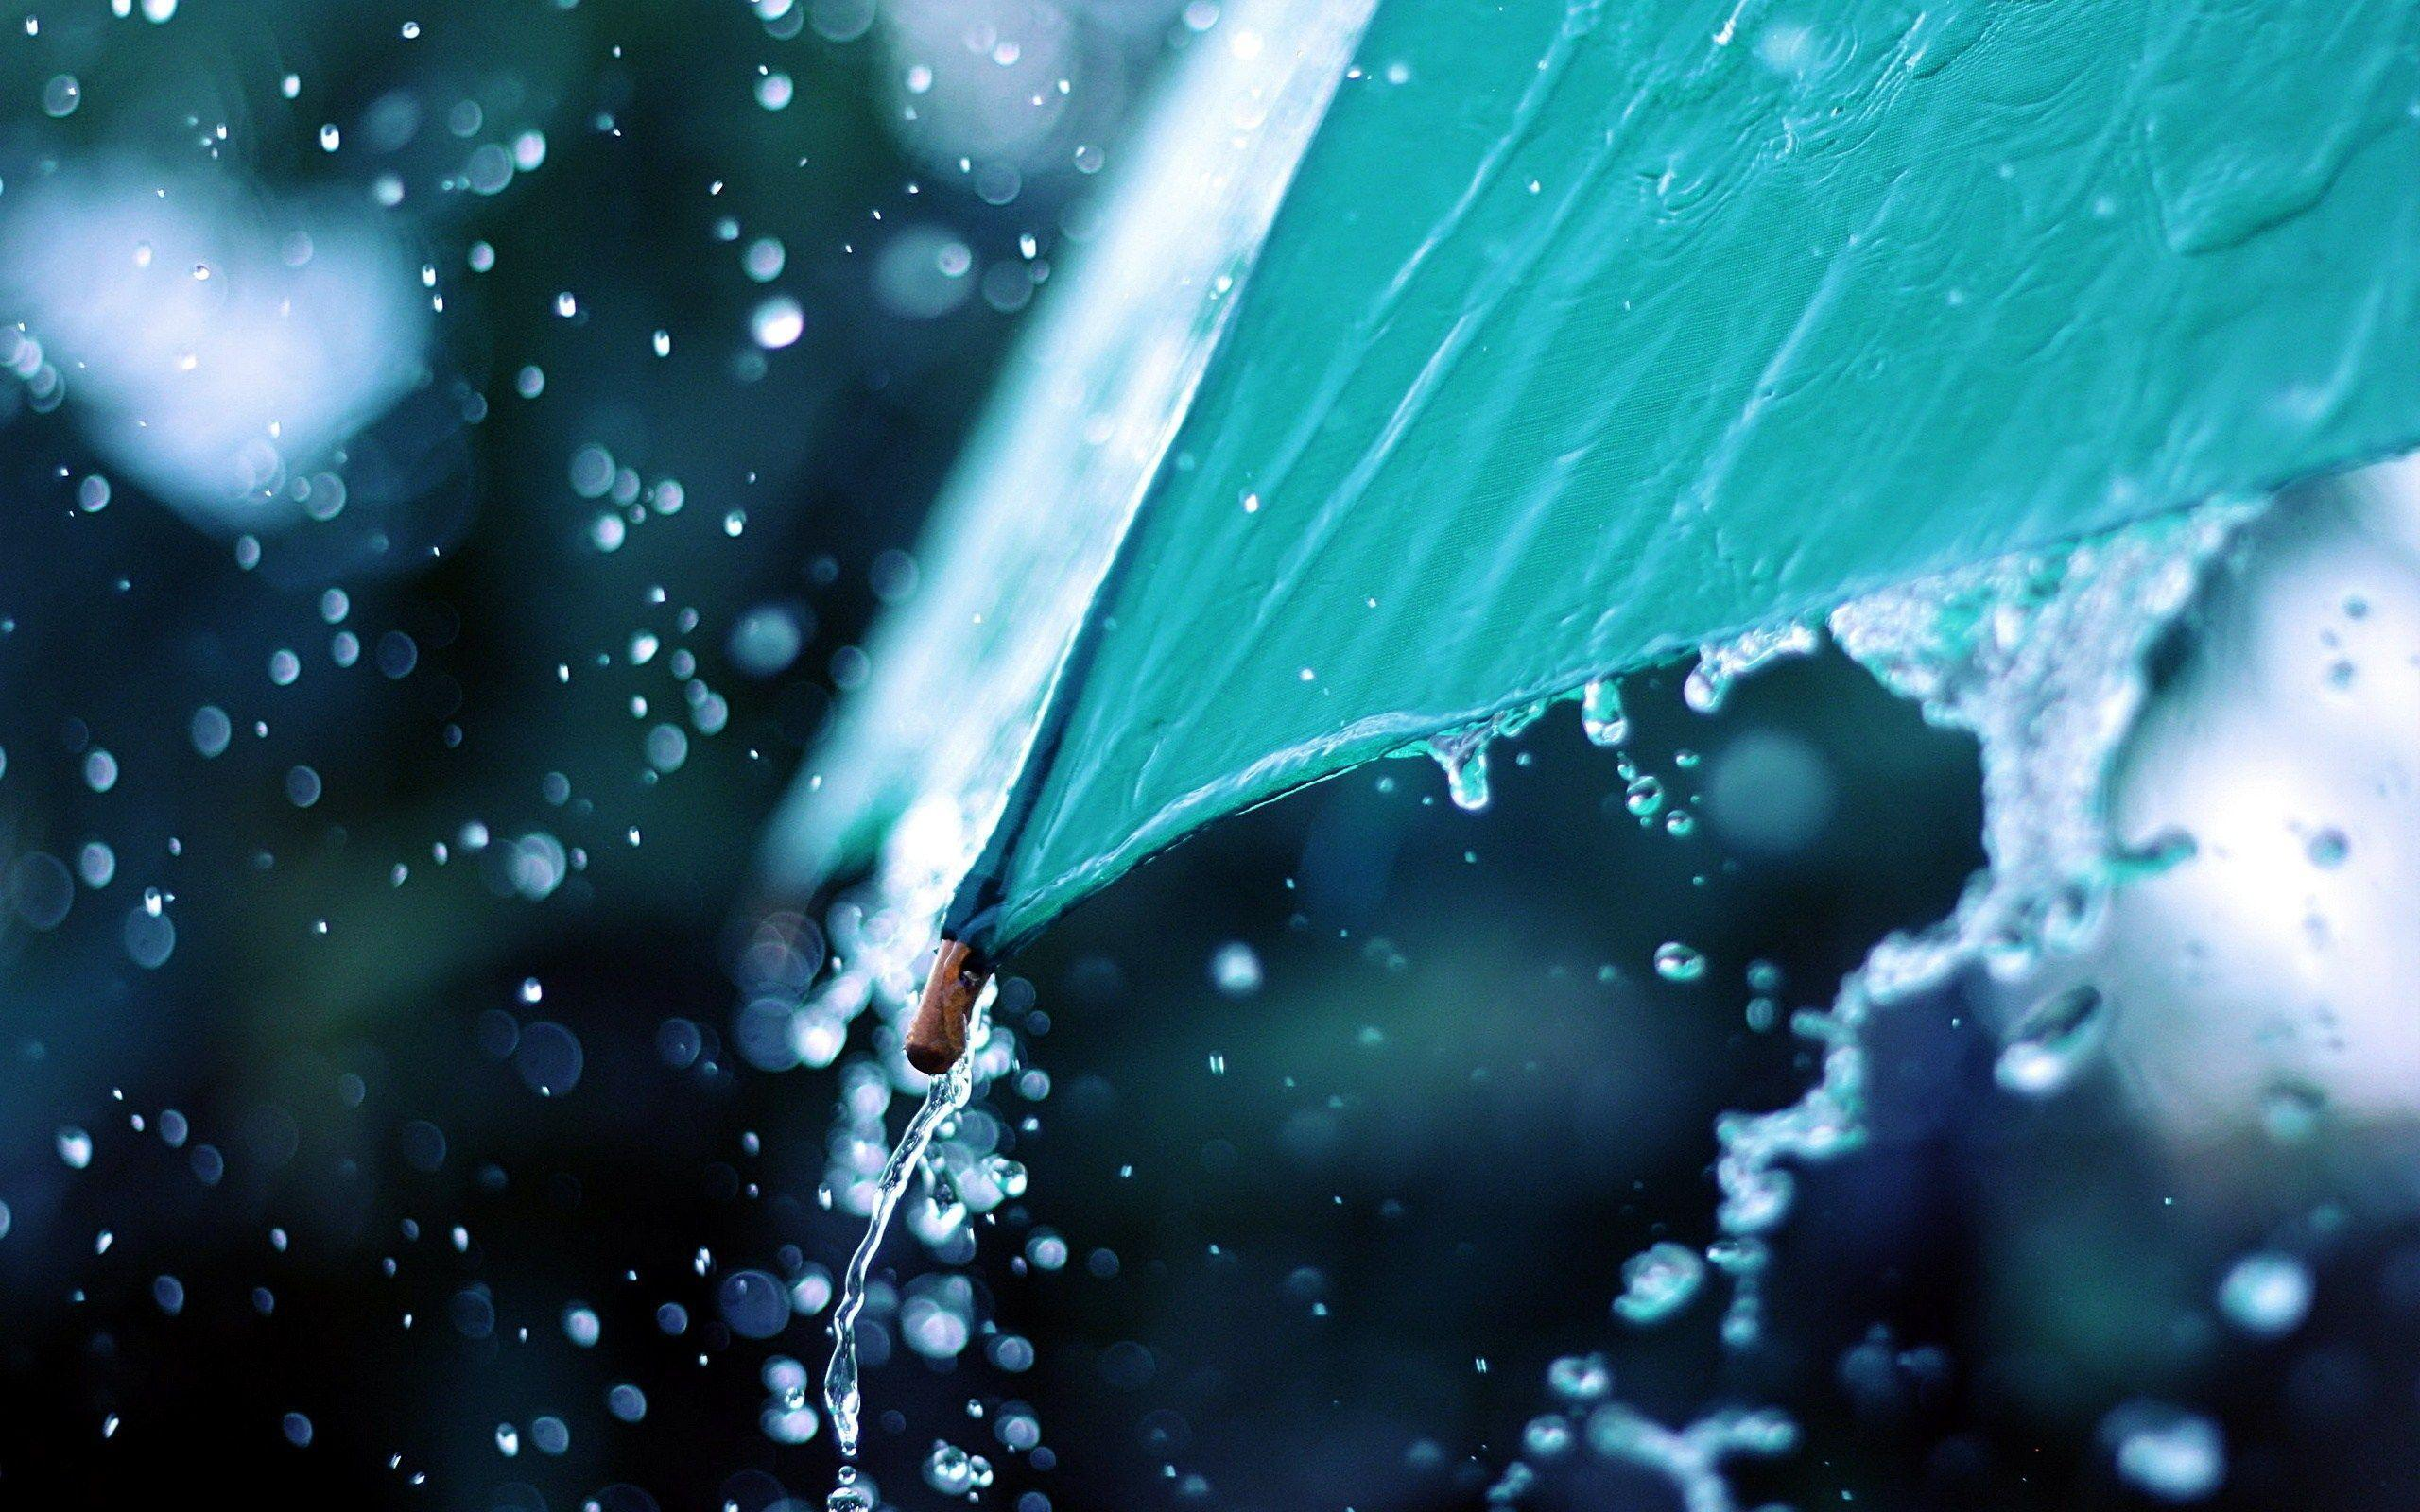 Water Flows From Umbrella Rain HD Wallpapers